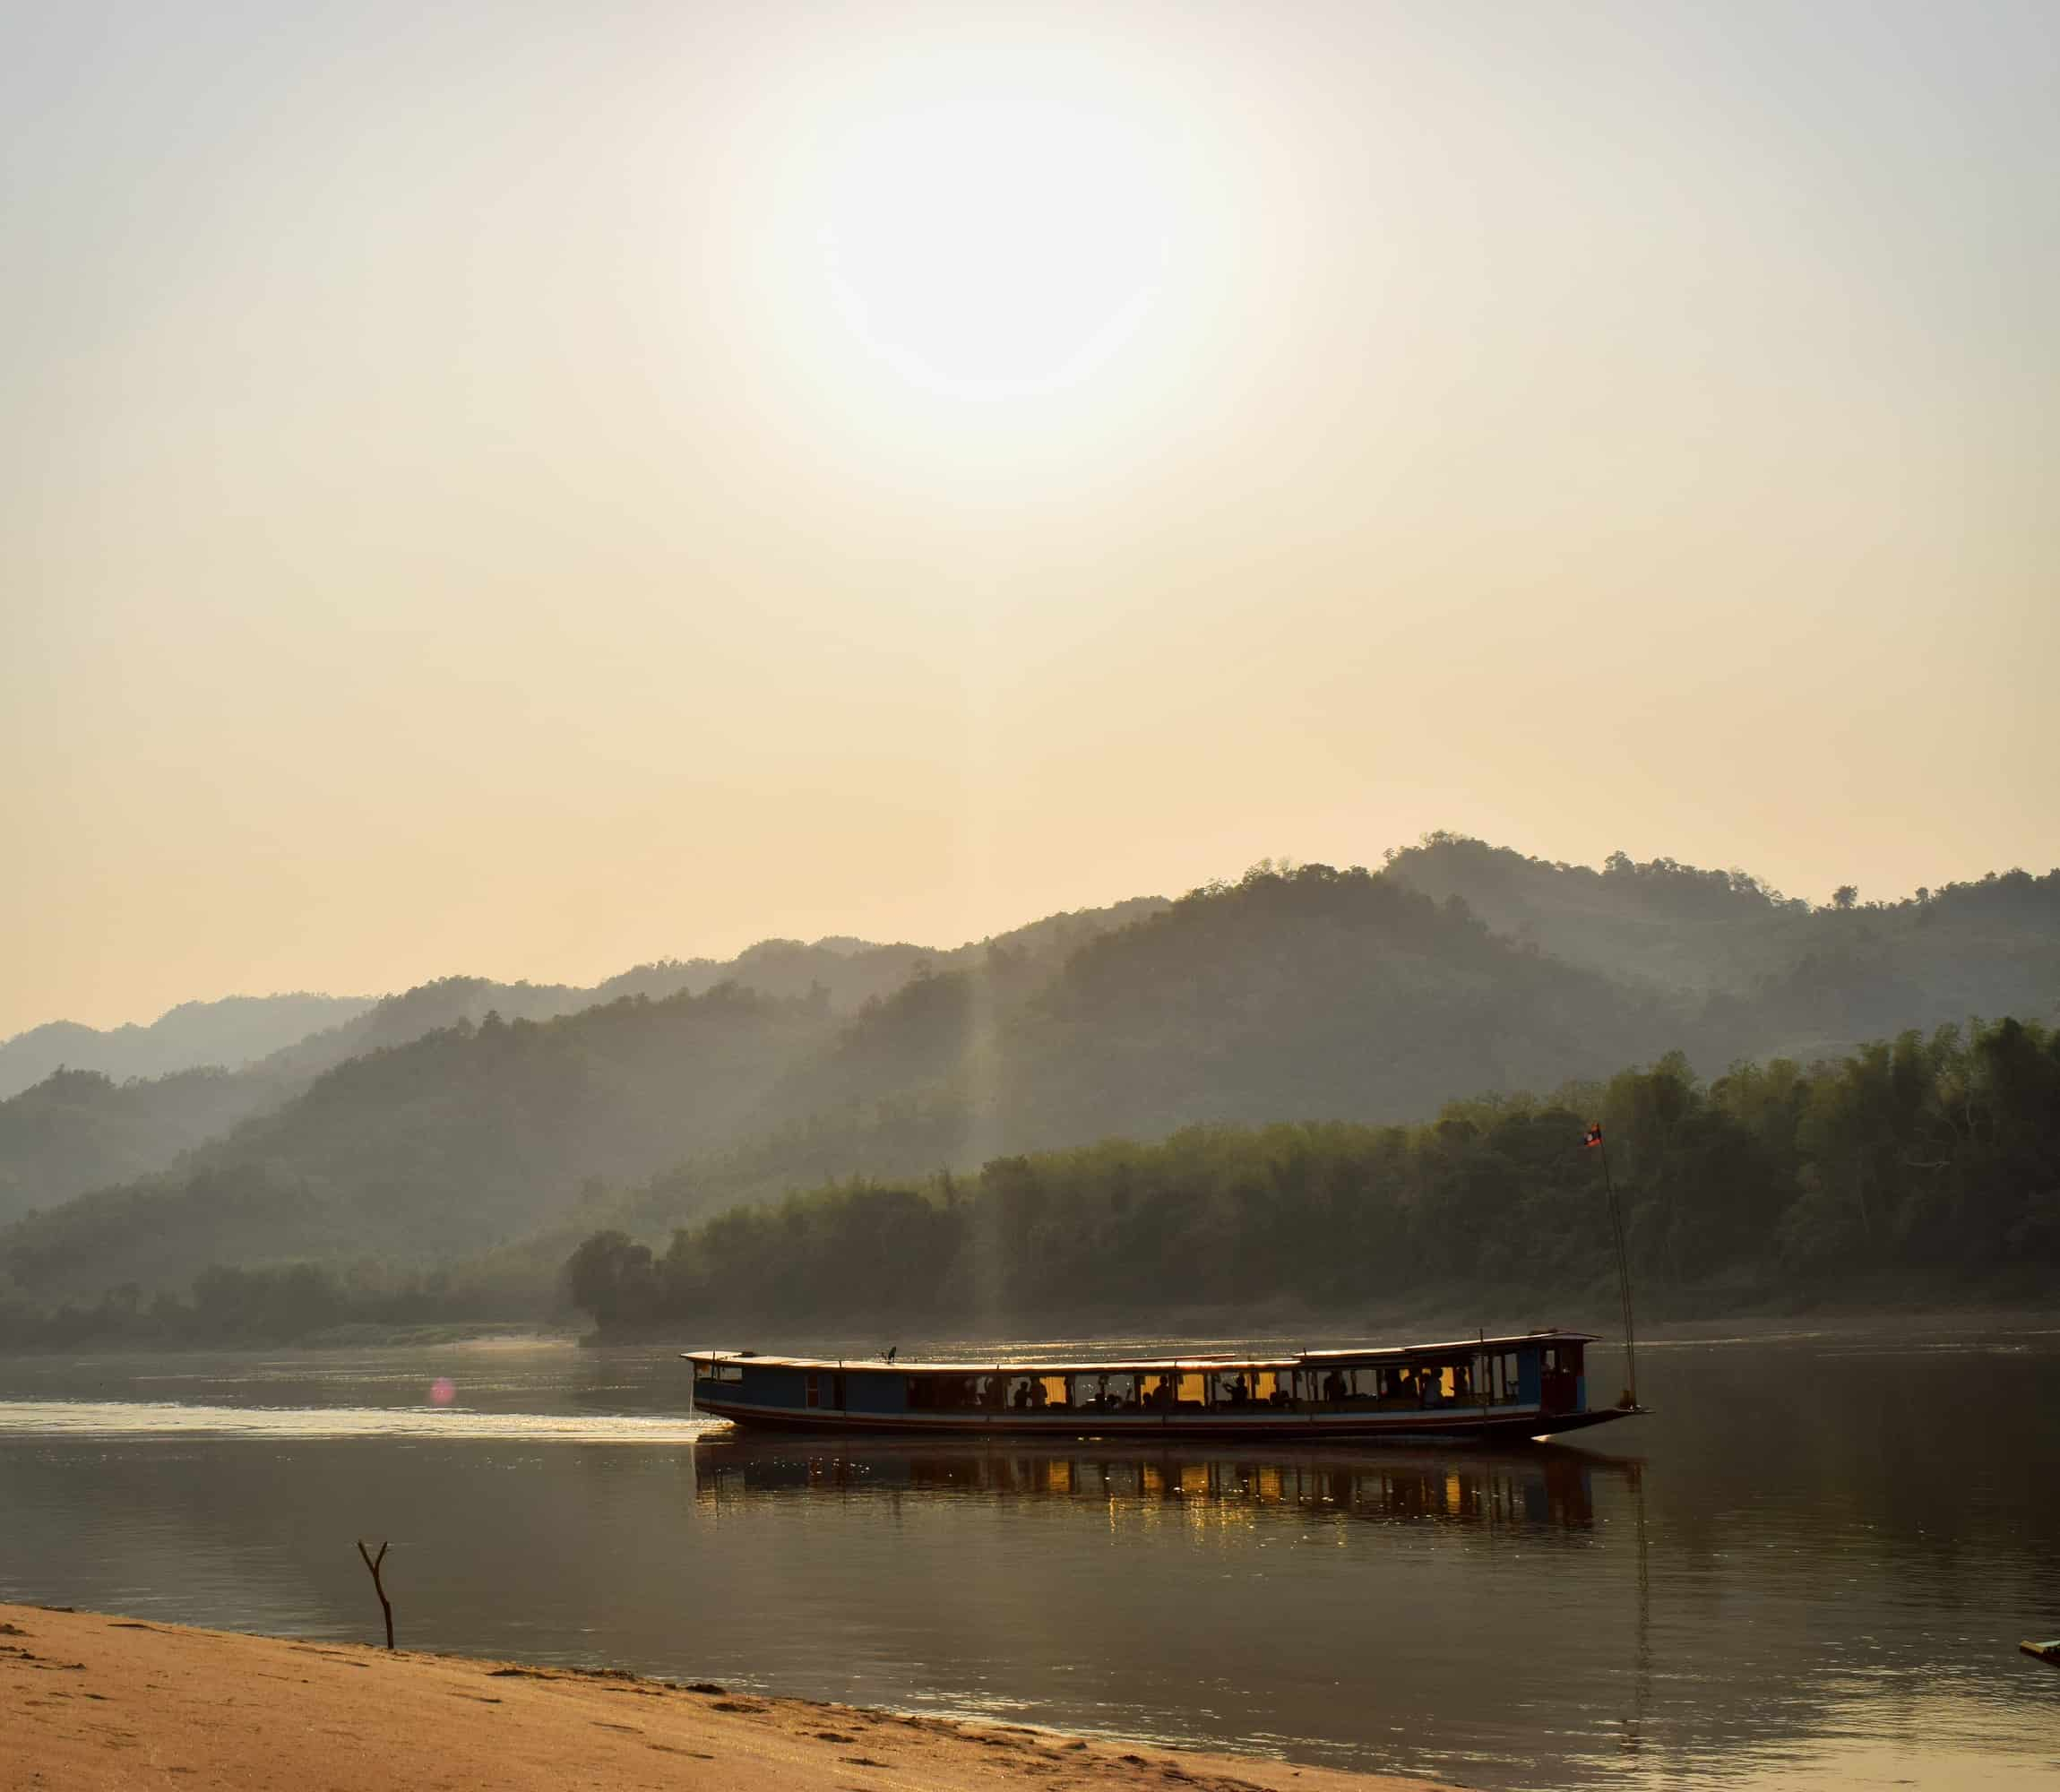 Sunset as a boat sails down the Mekong River in Laos